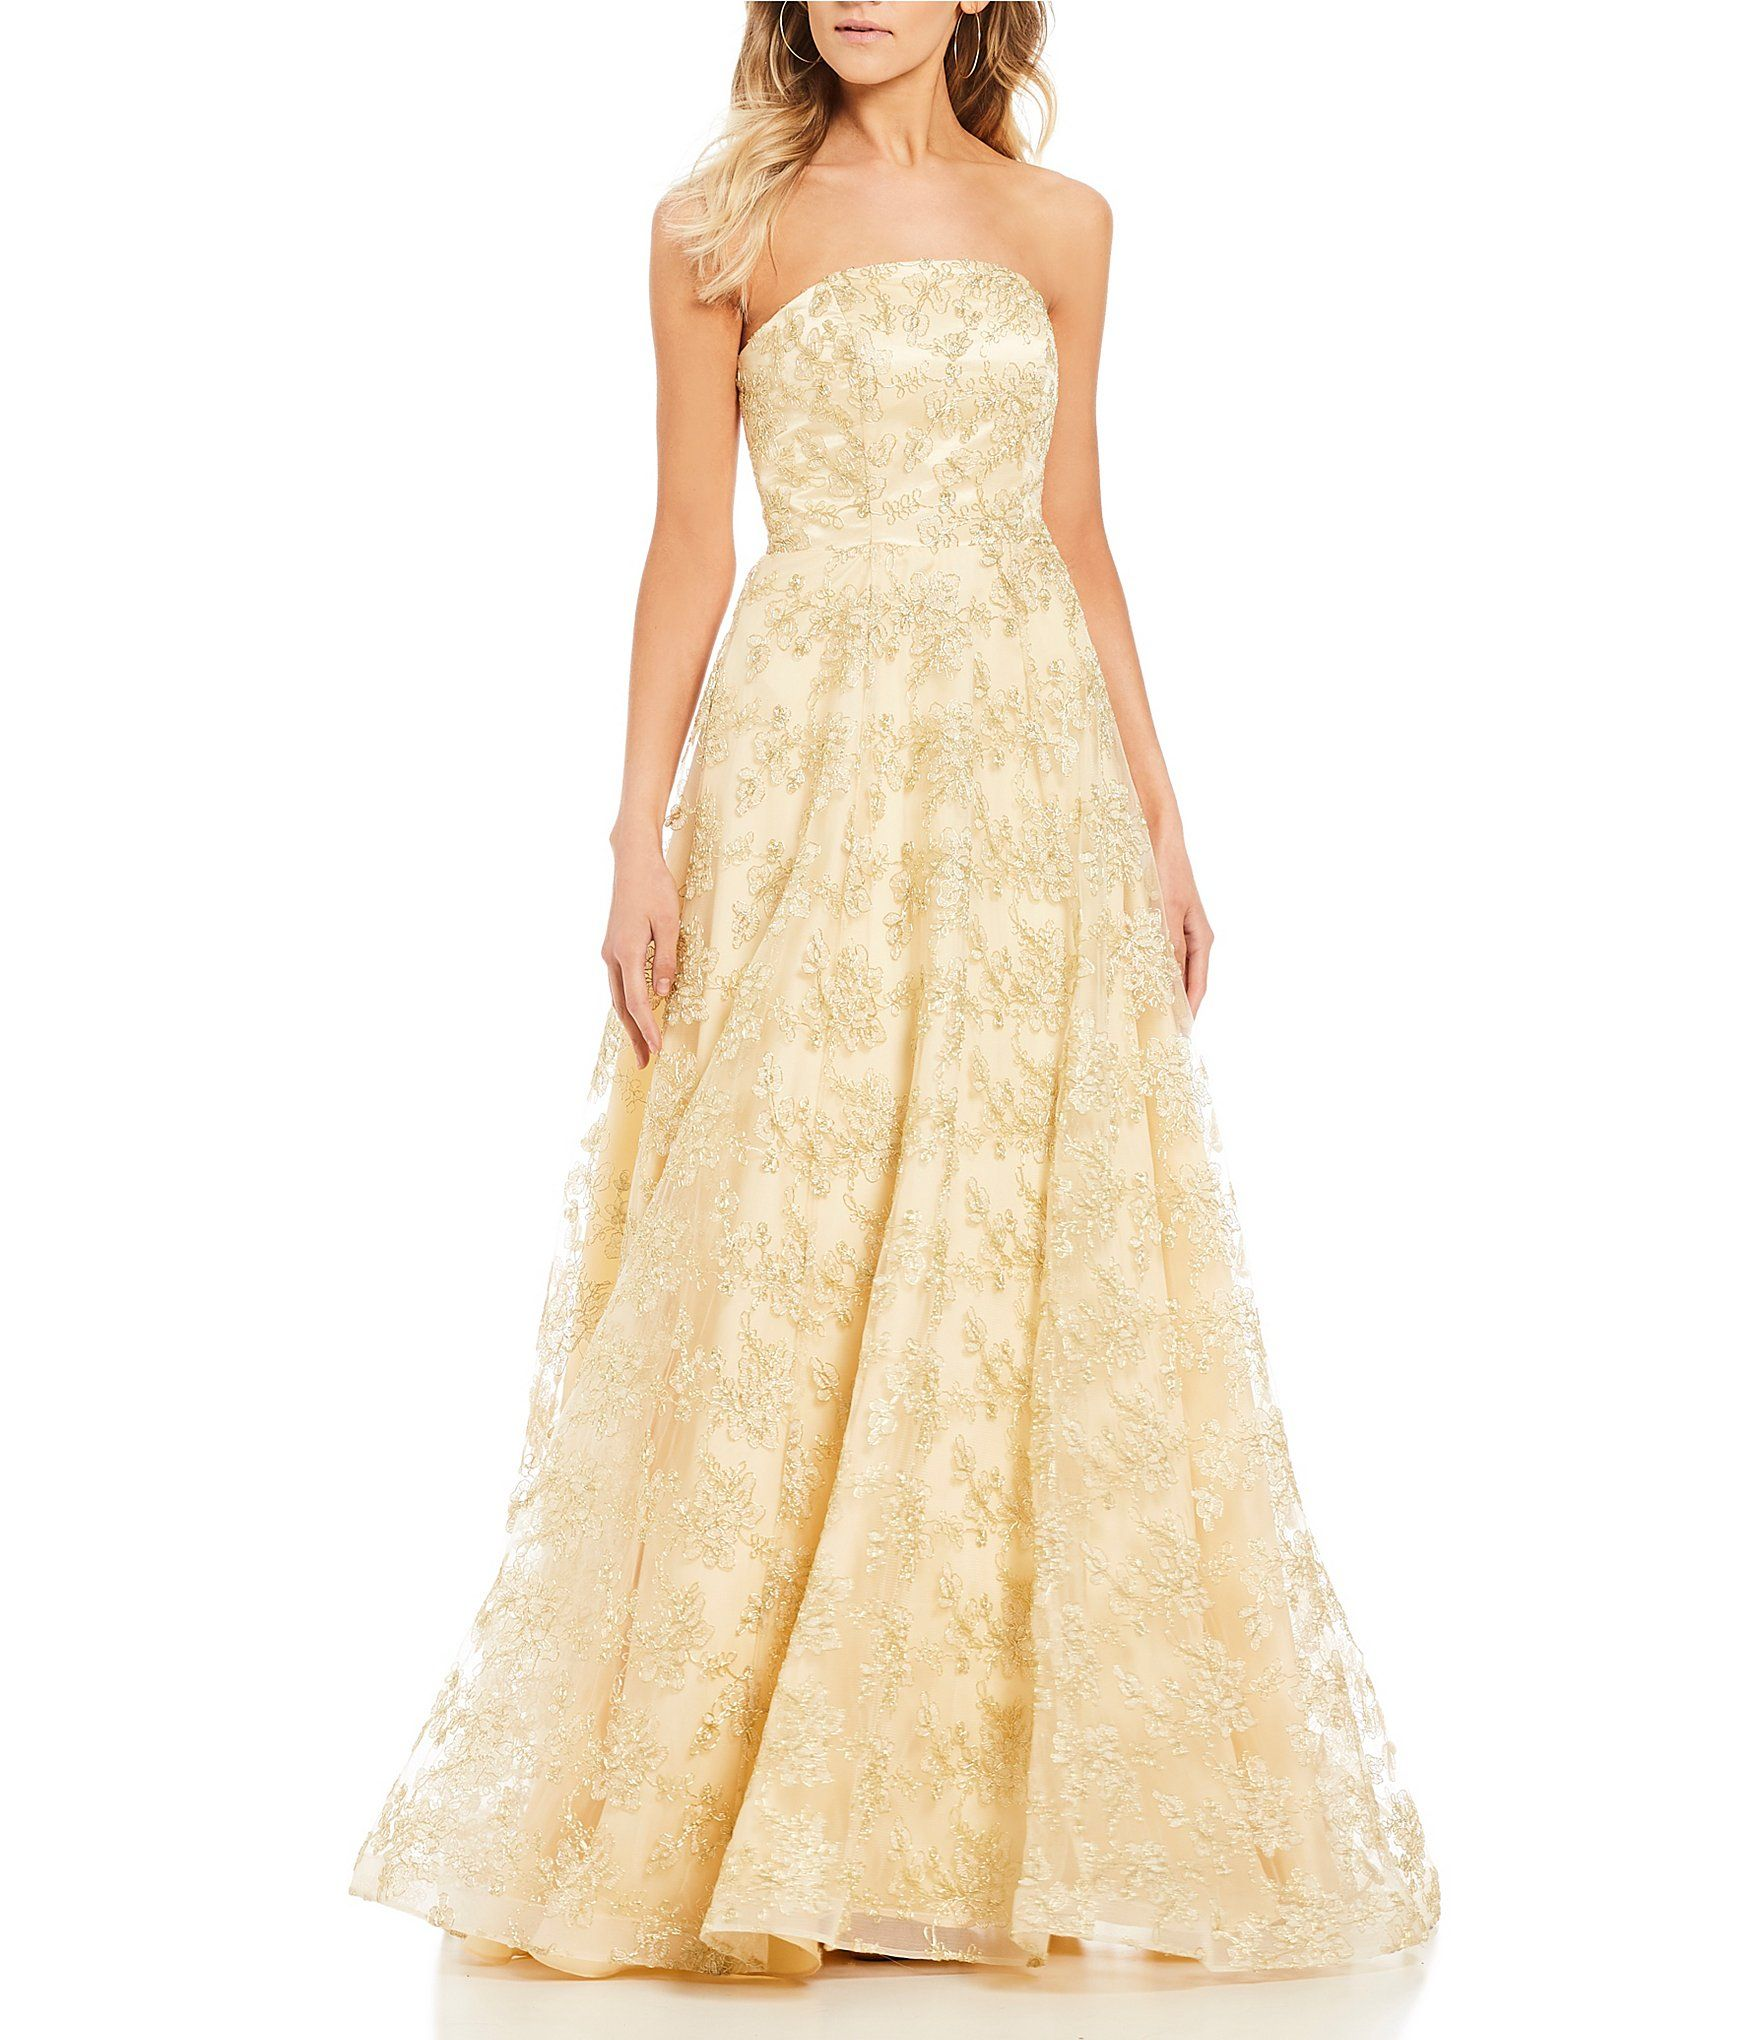 B. Darlin Strapless Embroidered Ballgown | Dillards, Ball gowns and ...